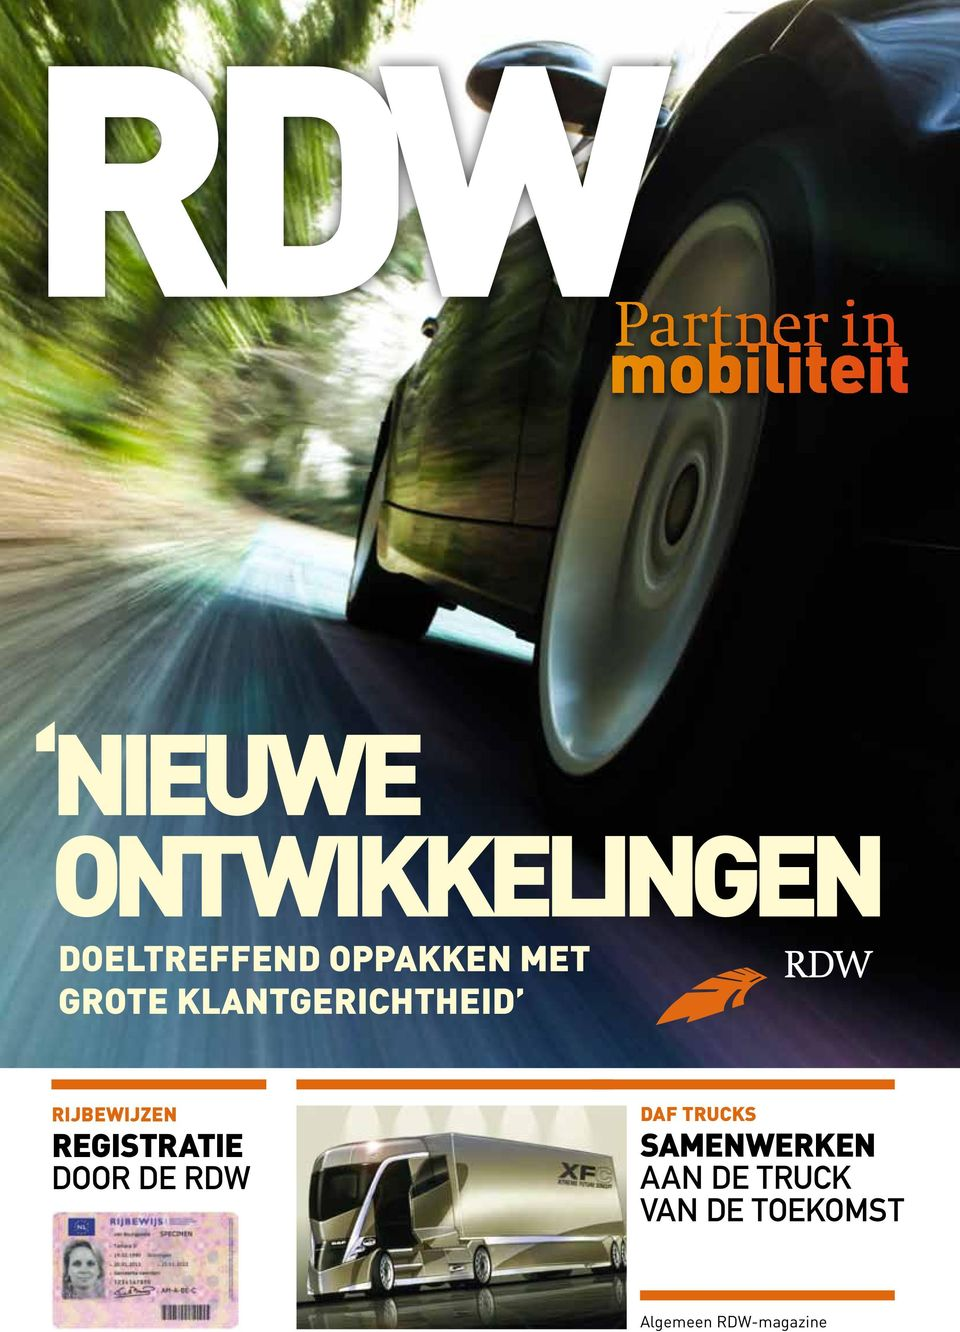 registratie door de RDW daf Trucks